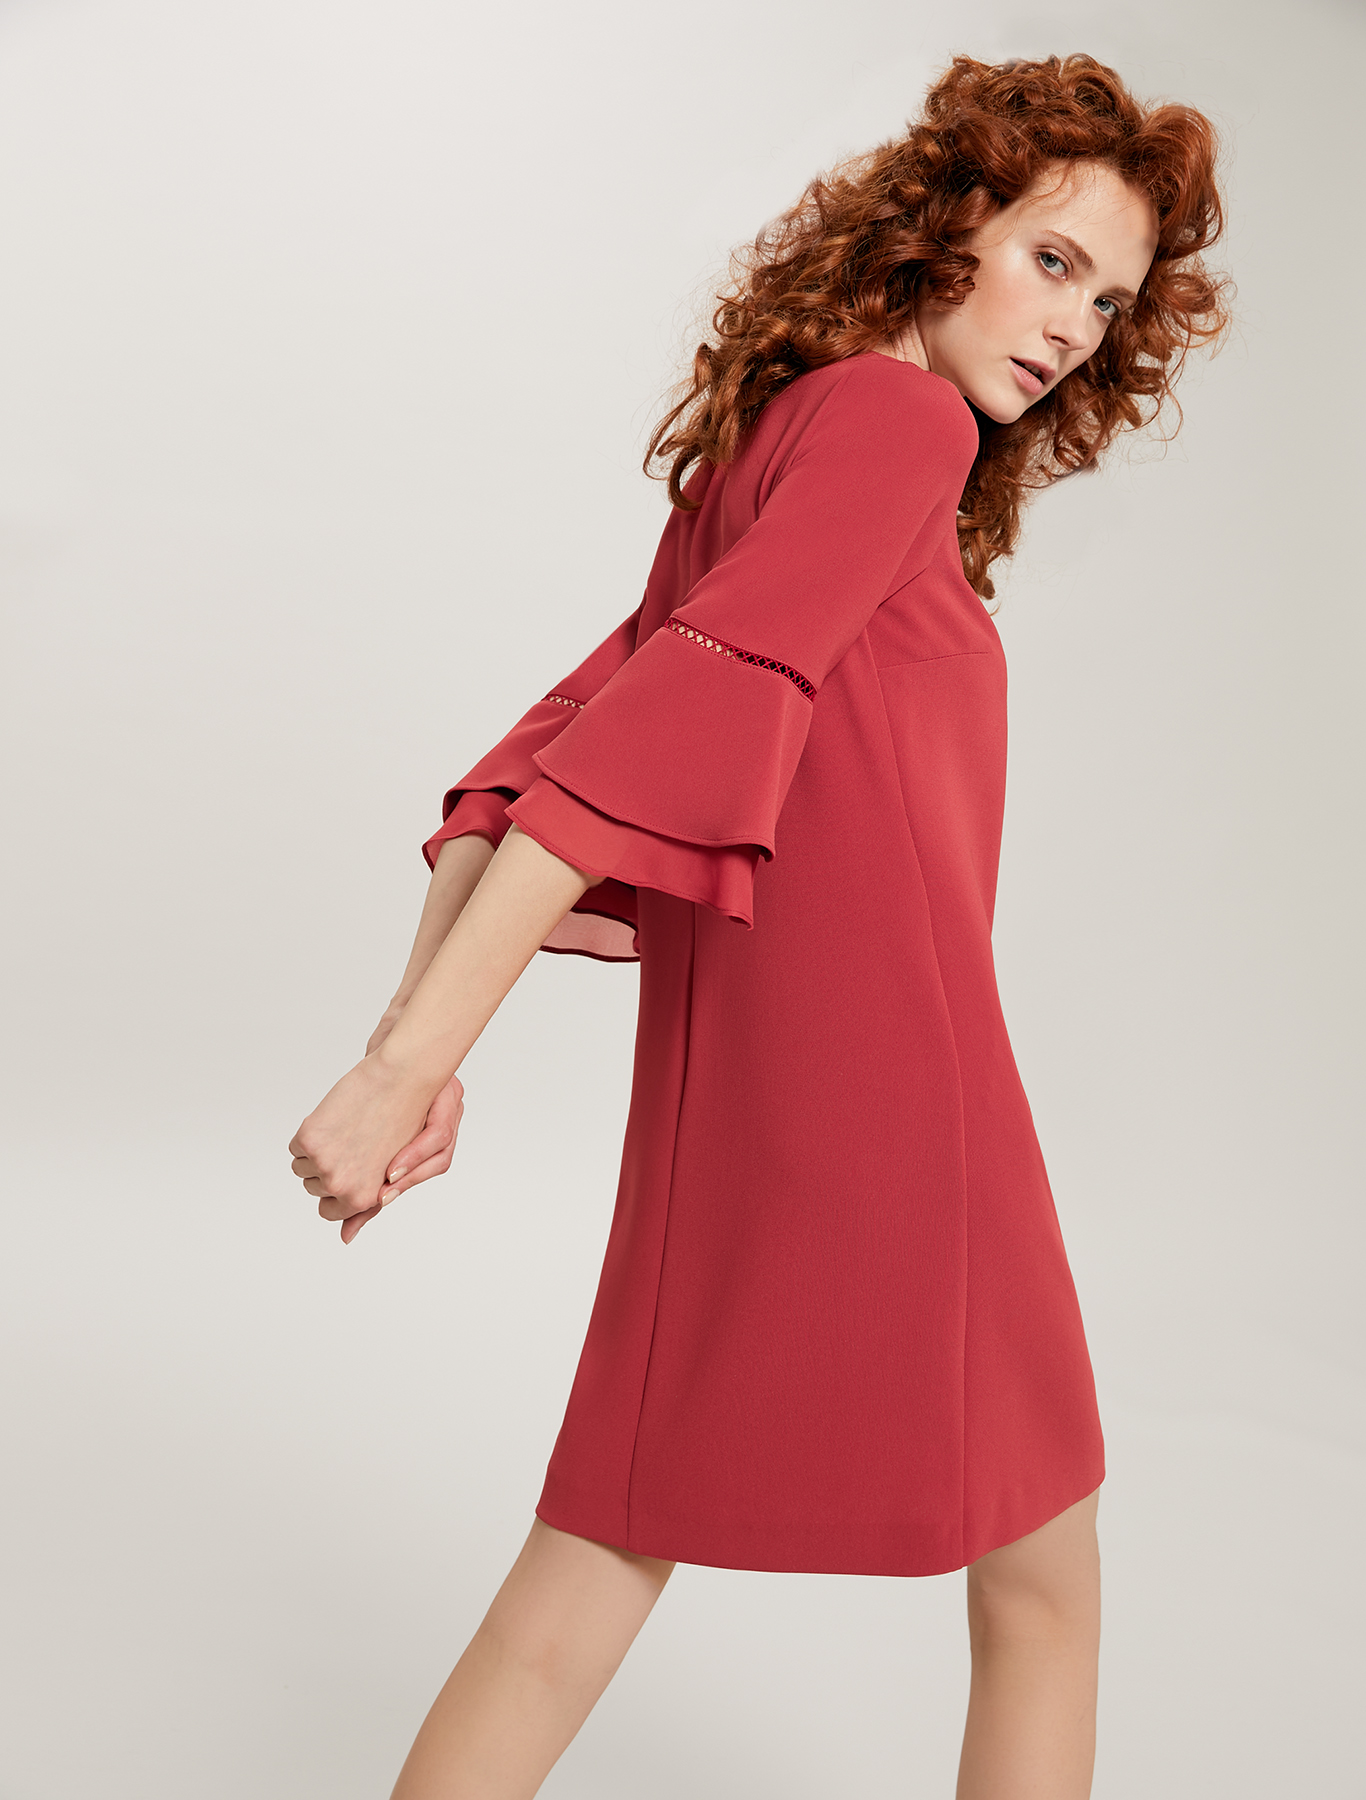 Dress with openwork and ruffles - red - pennyblack